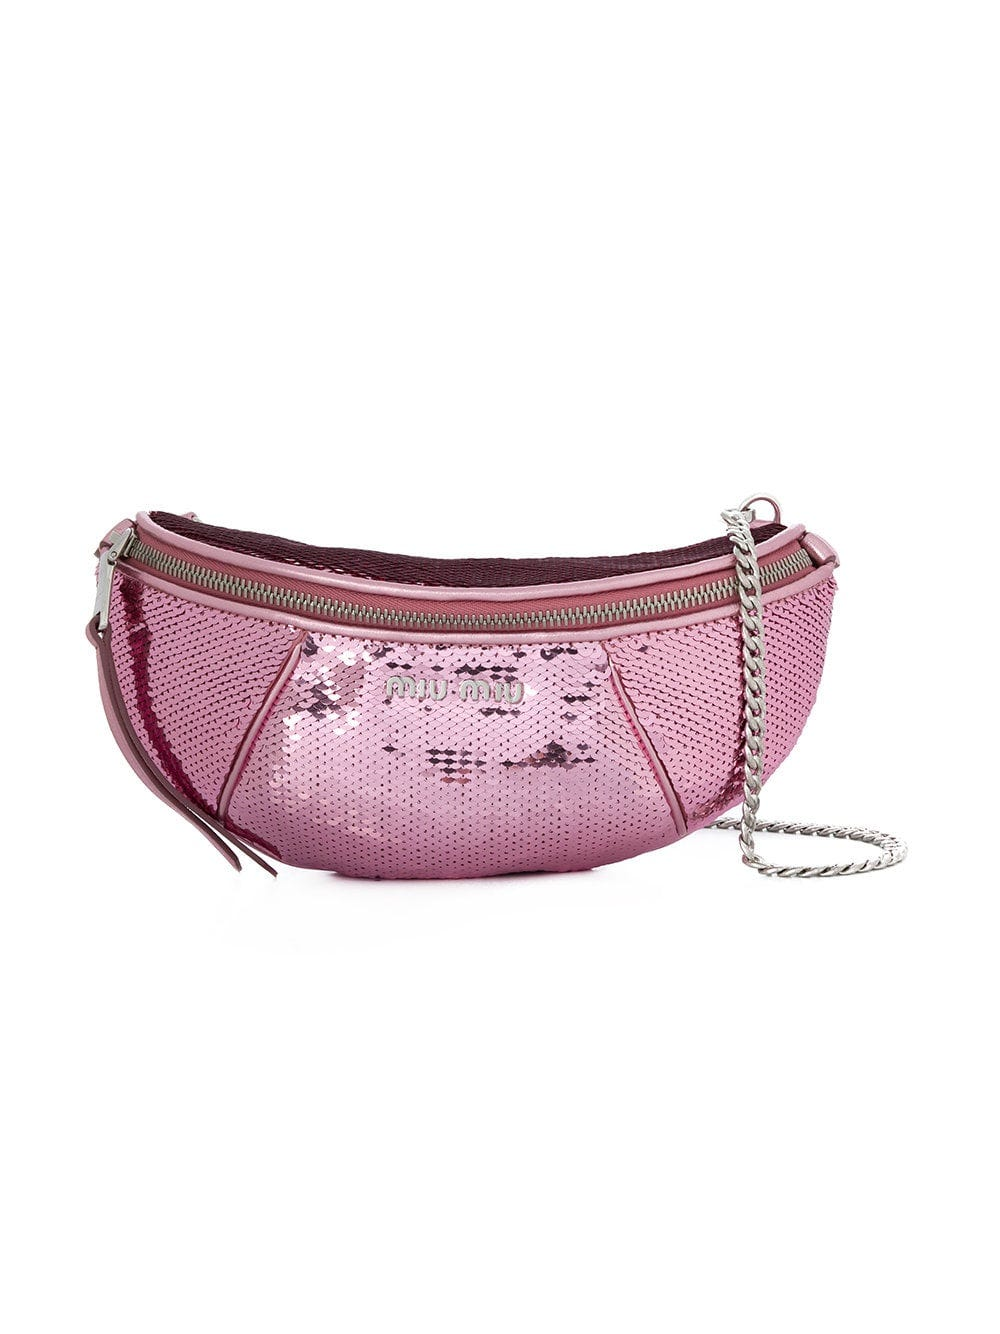 40b316d60e Cute Fanny Packs For Women, From Designer To Affordable